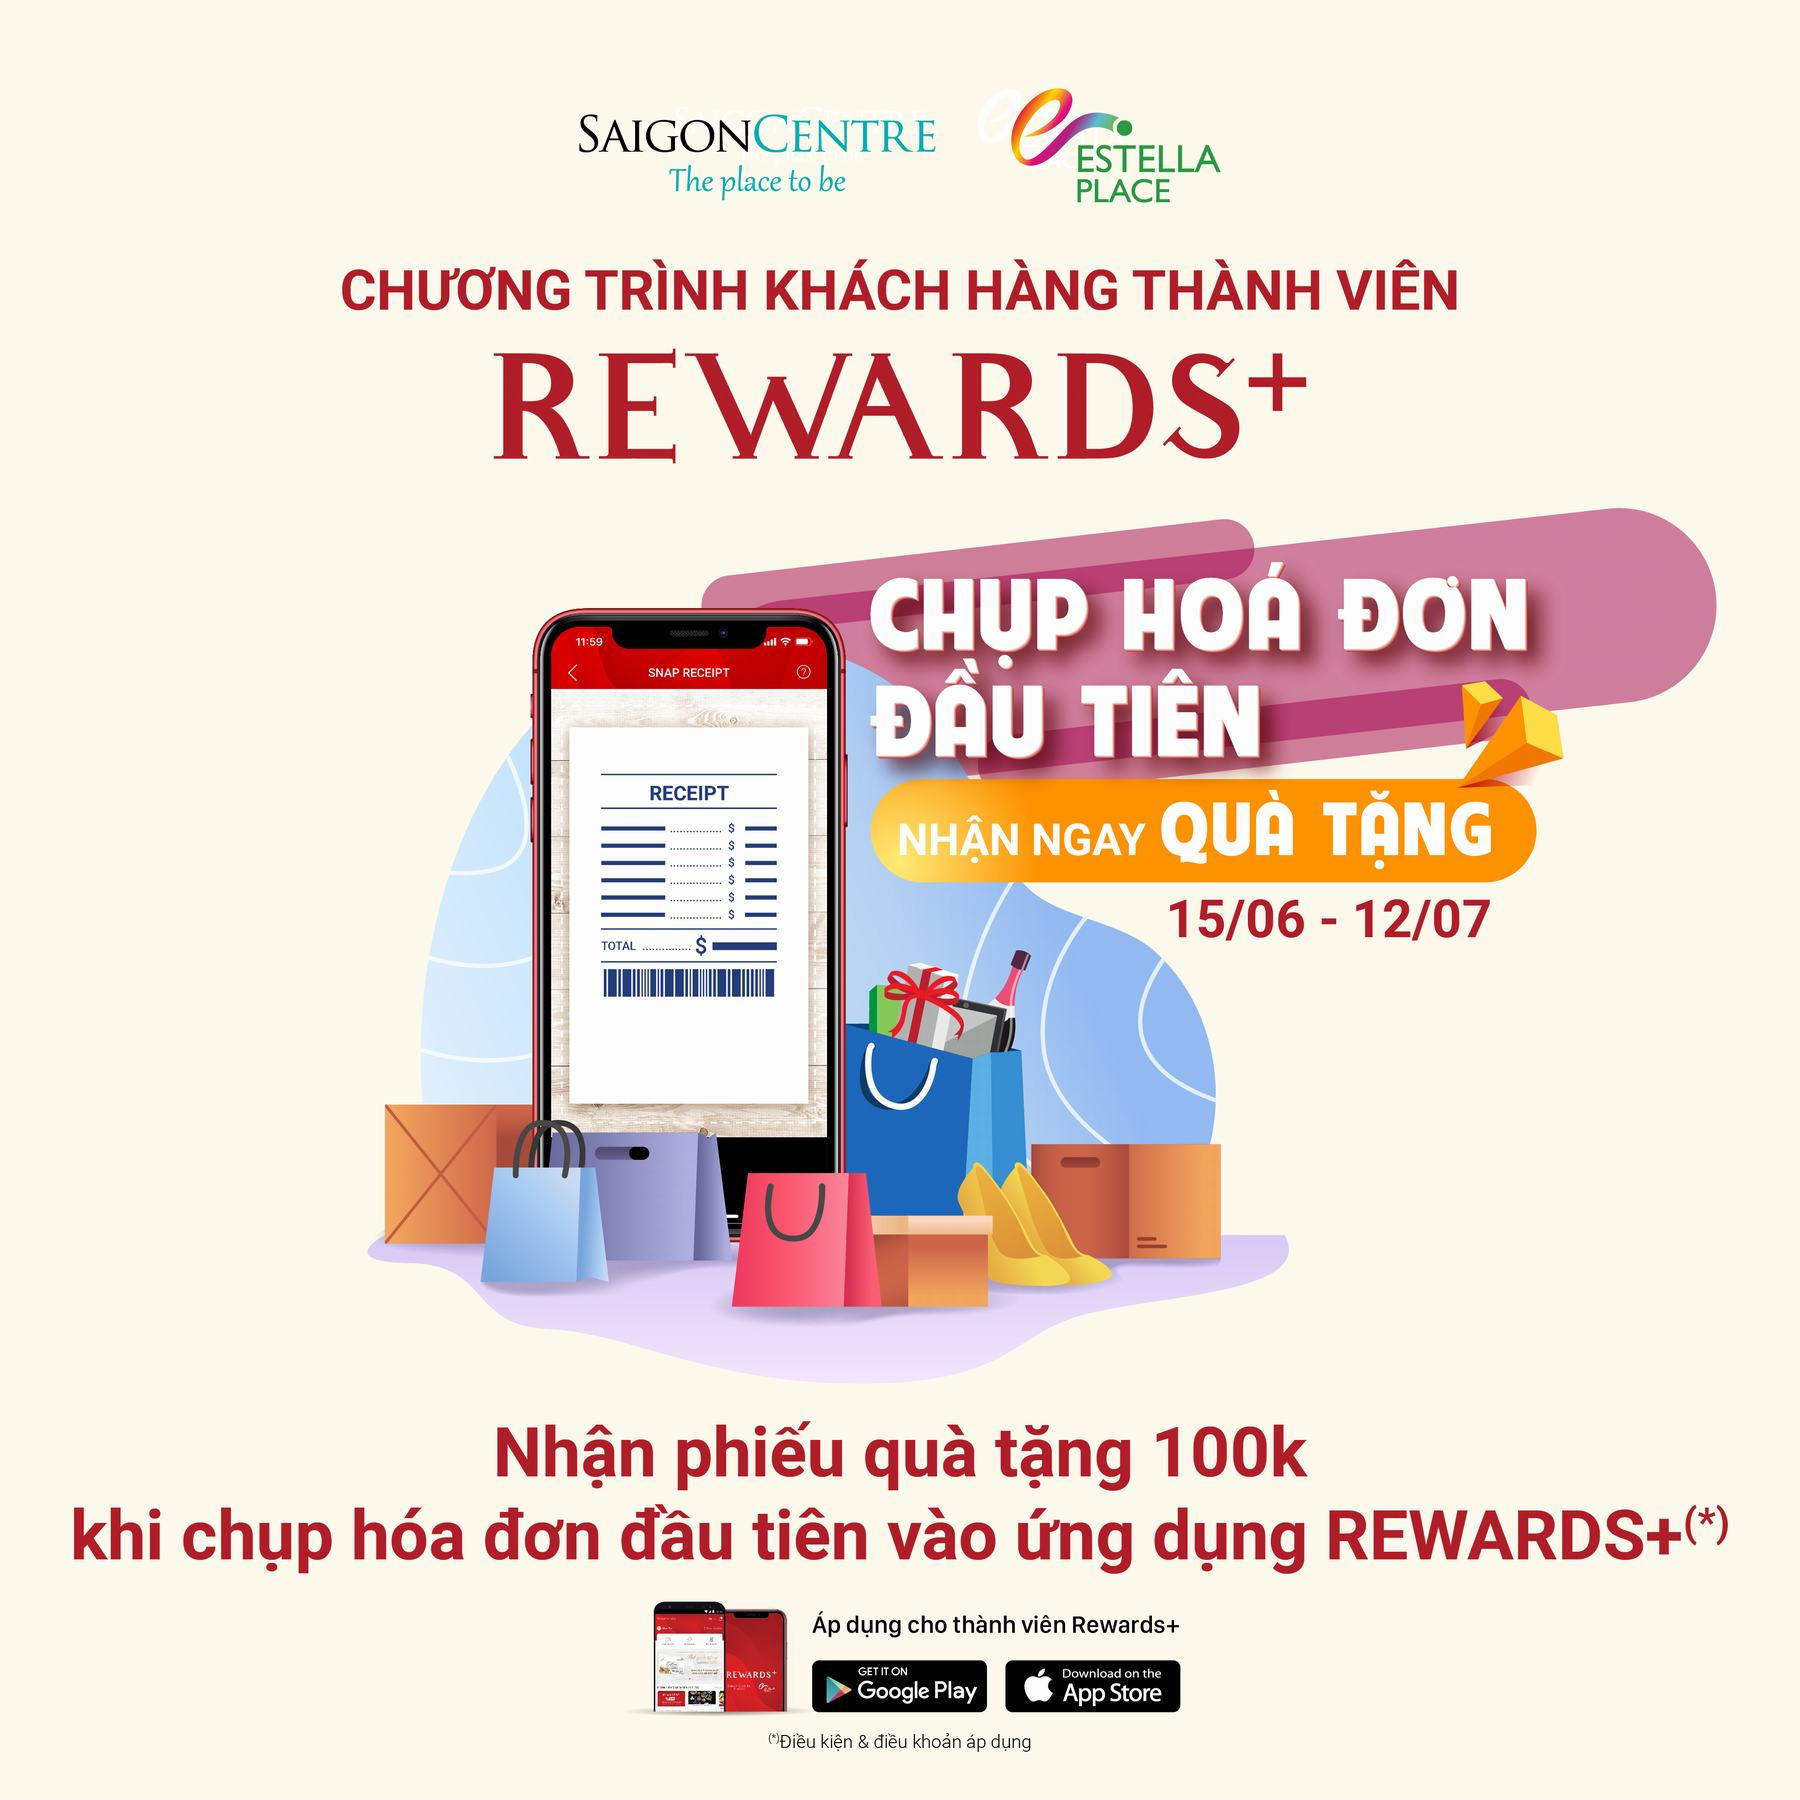 Snap first receipts and get gift vouchers